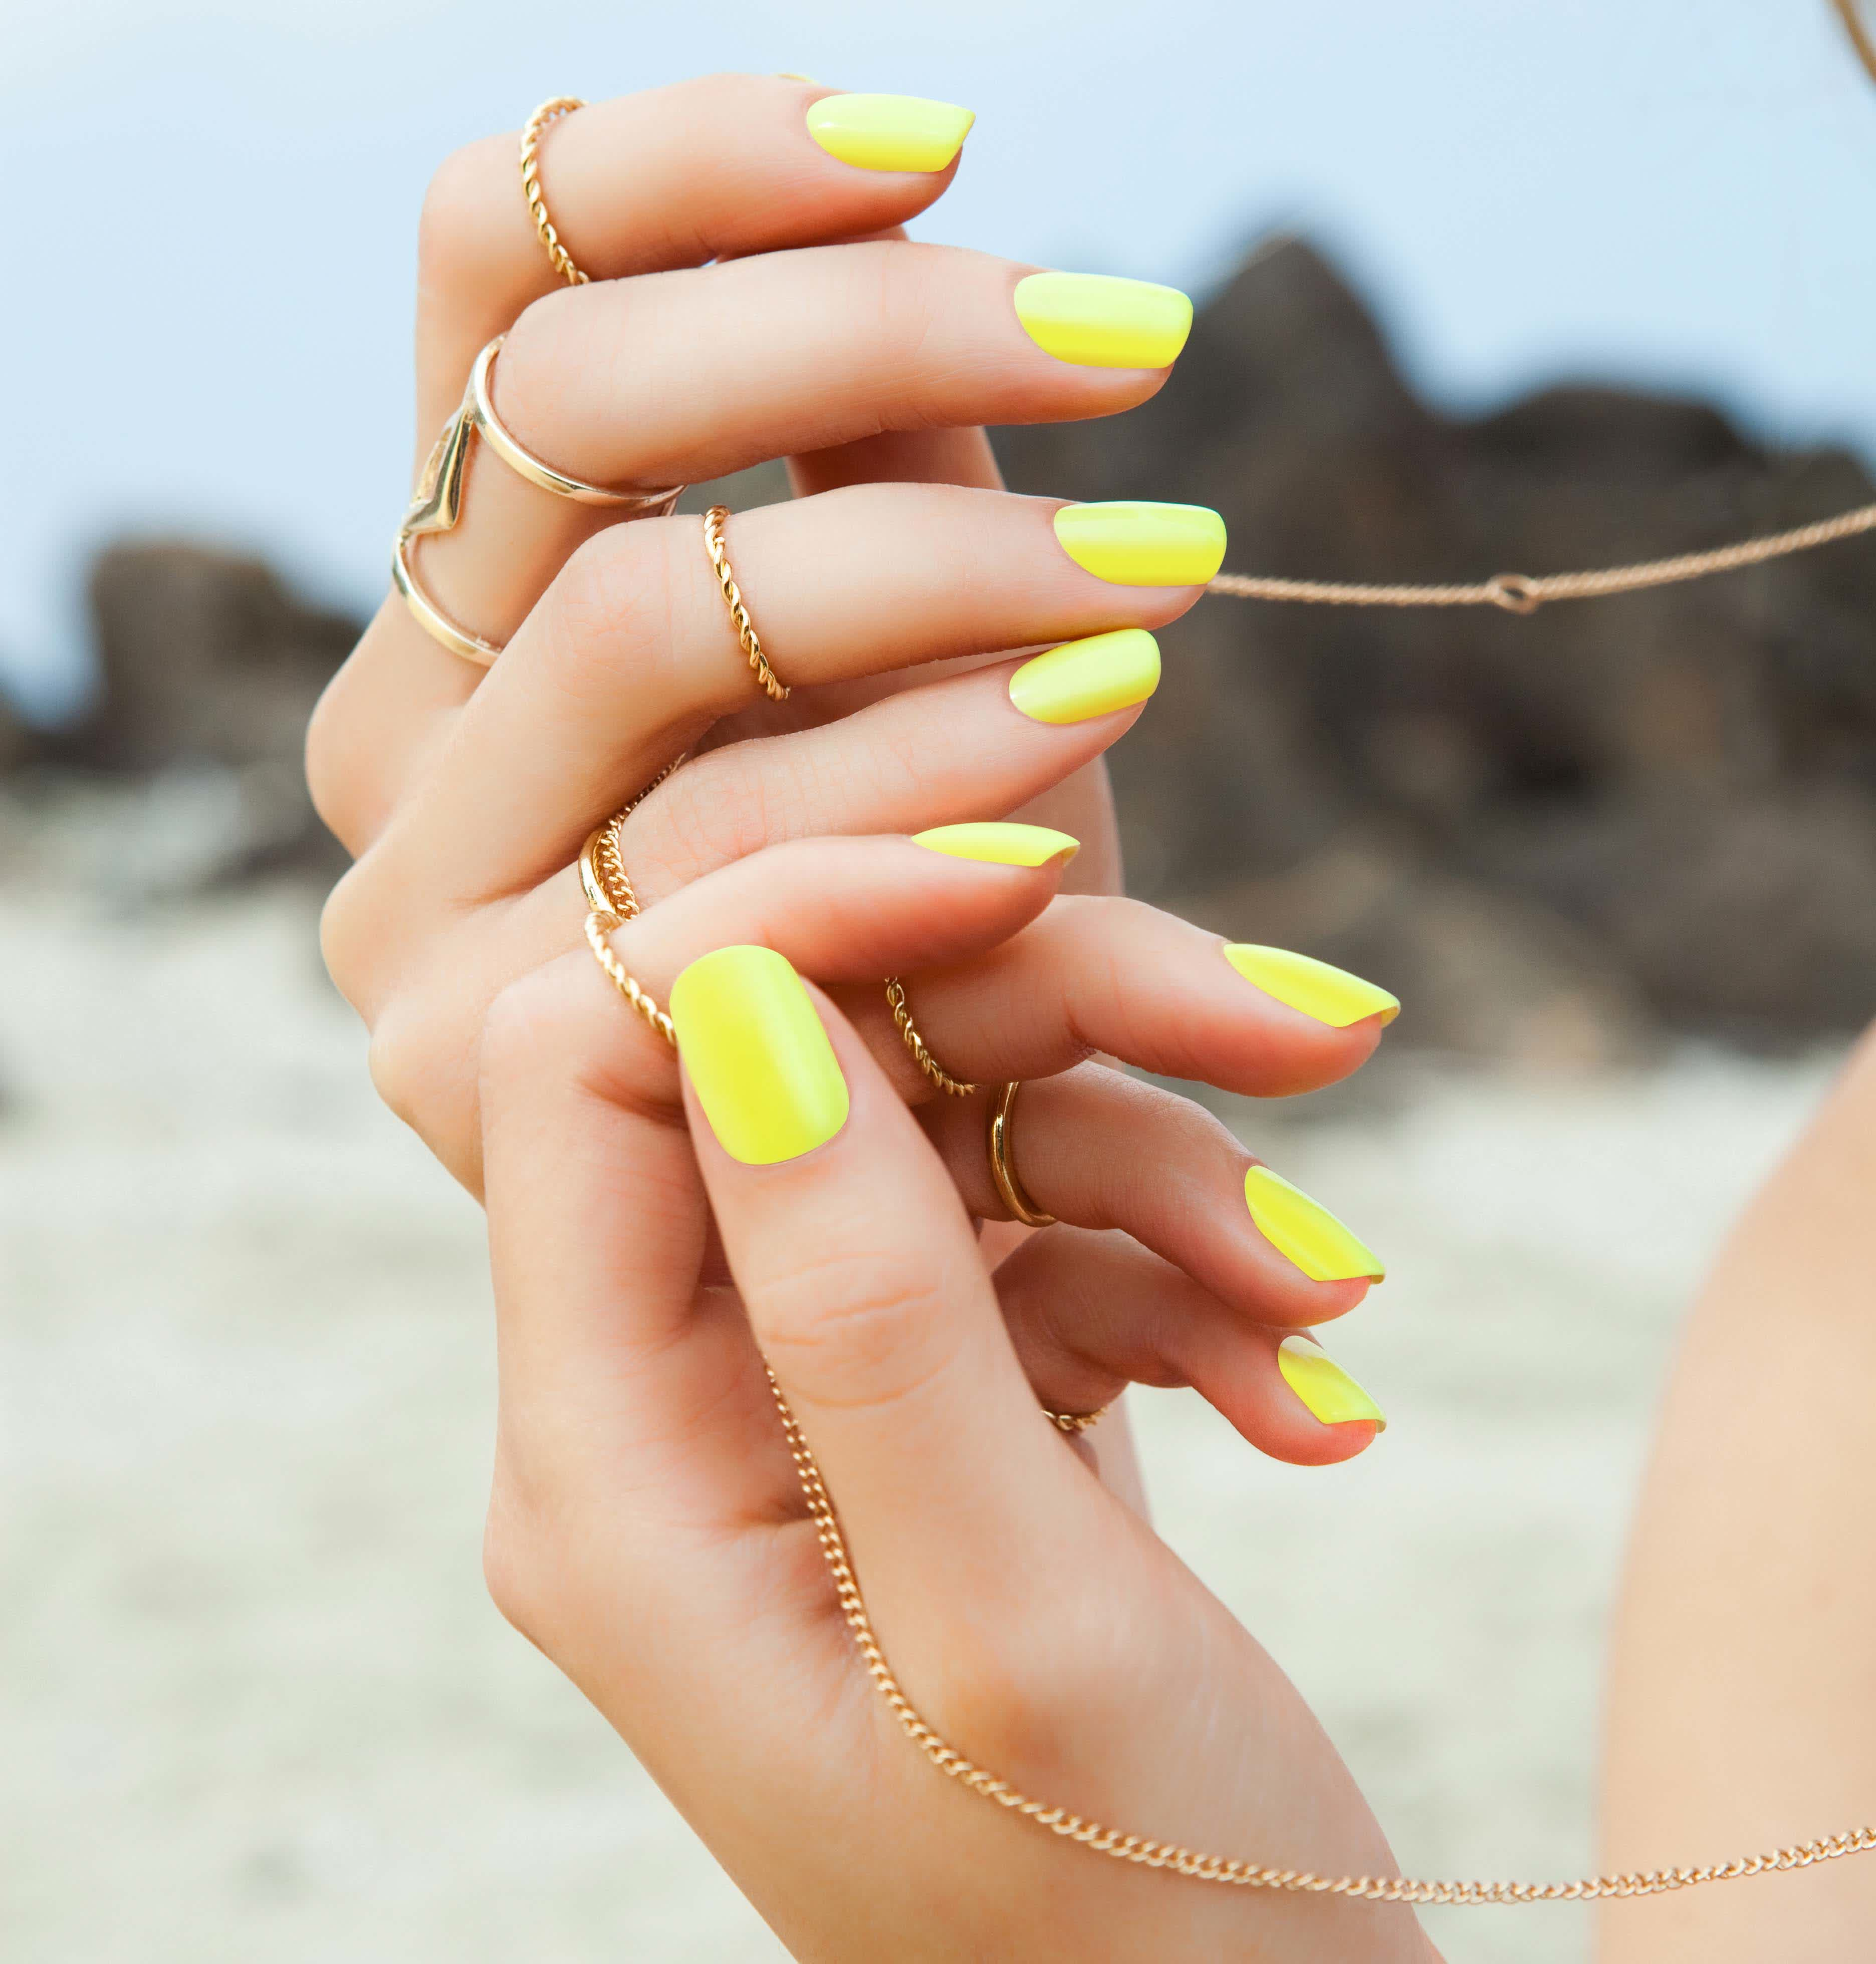 Style Up Your Summer Hands!